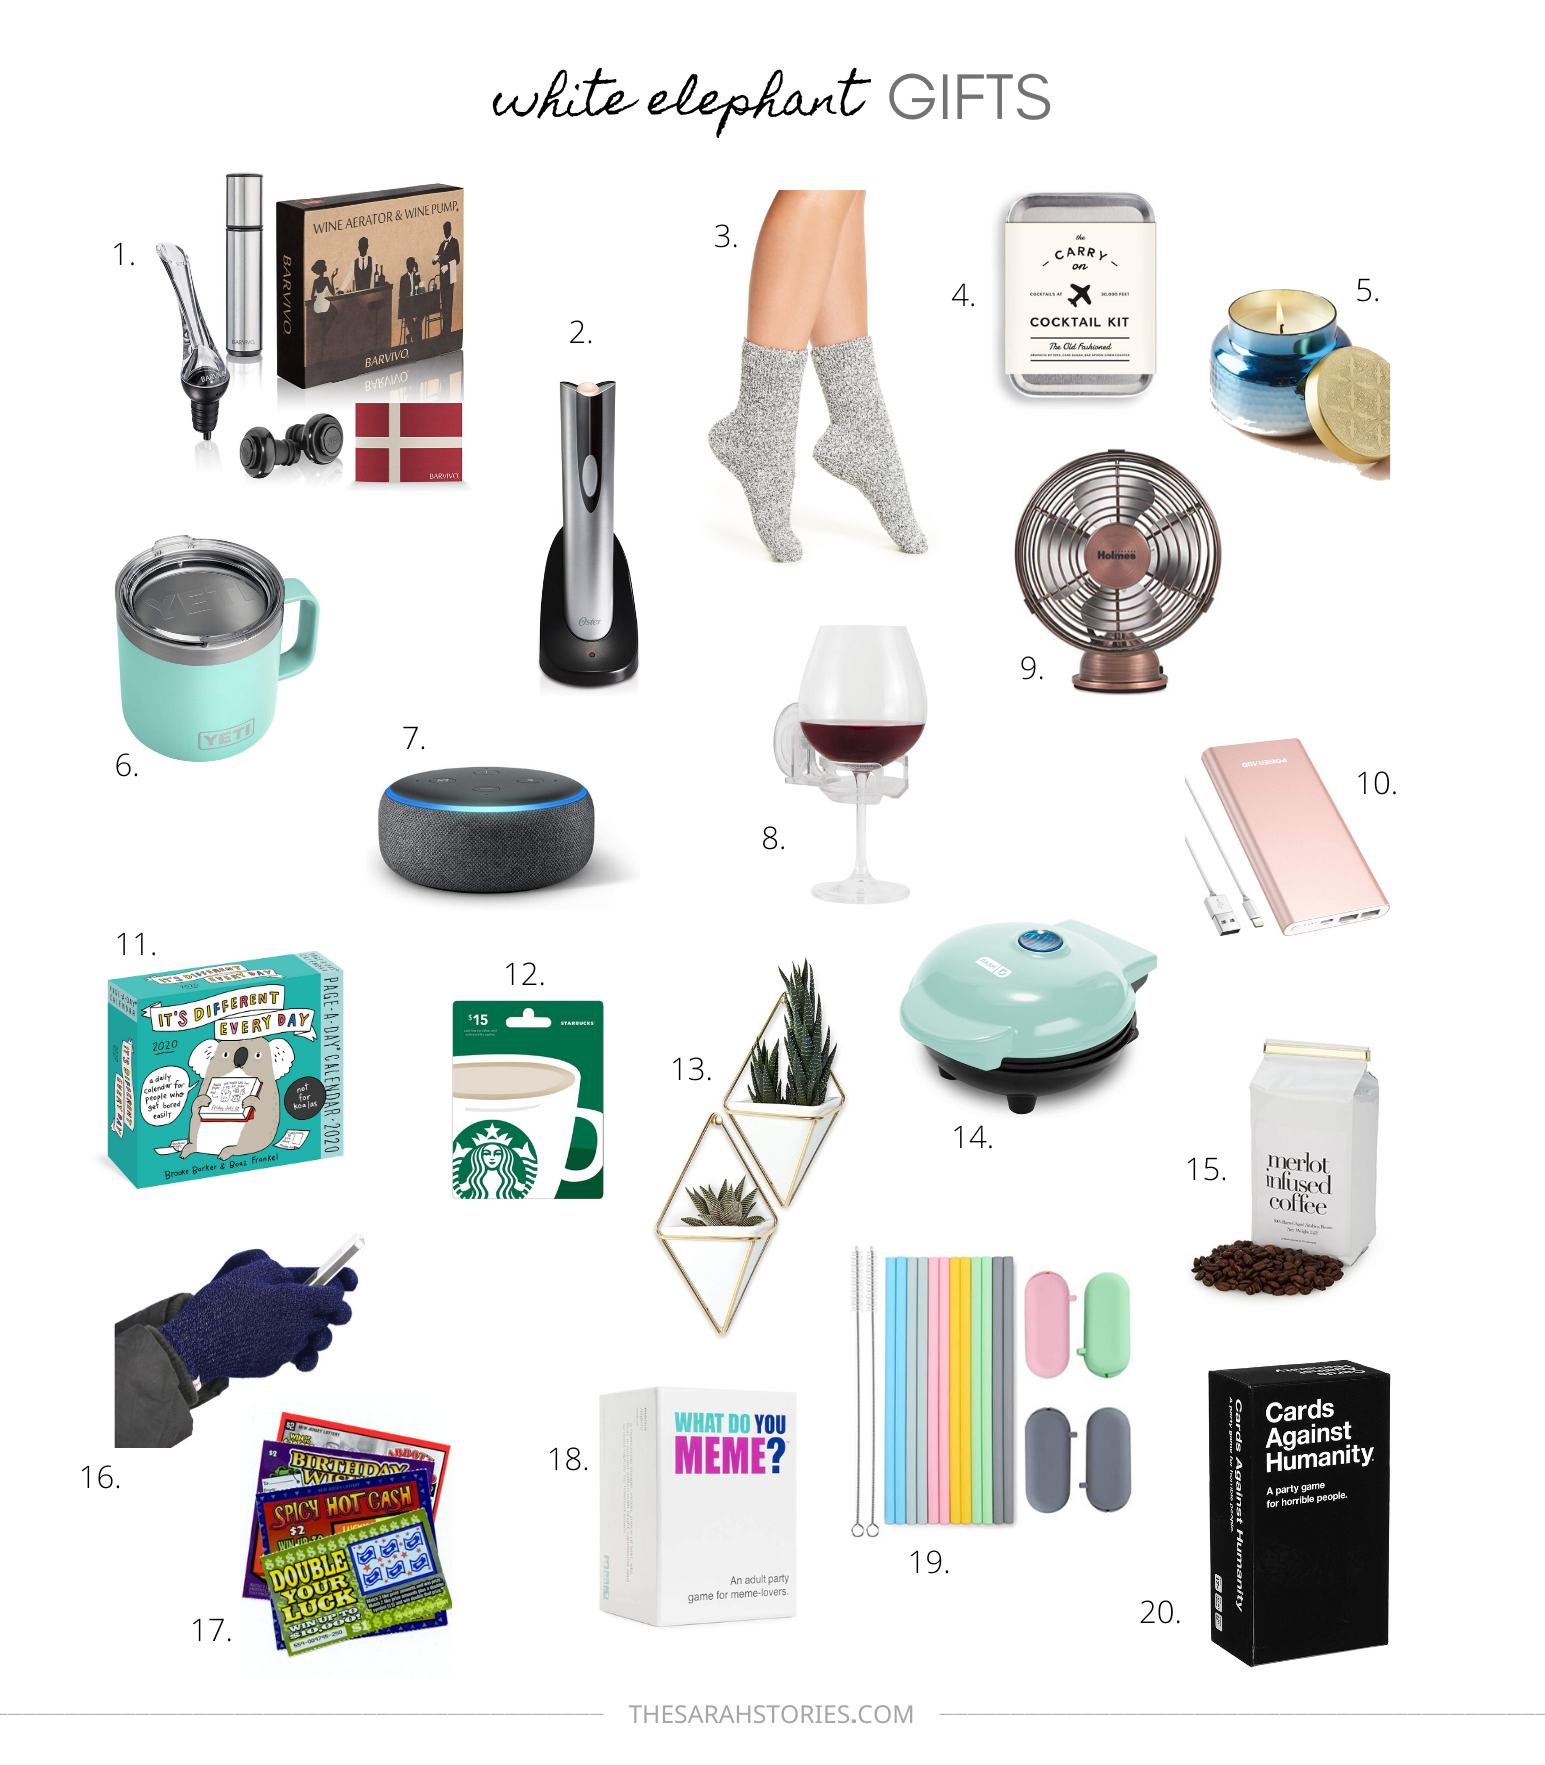 White elephant Holiday gift guide